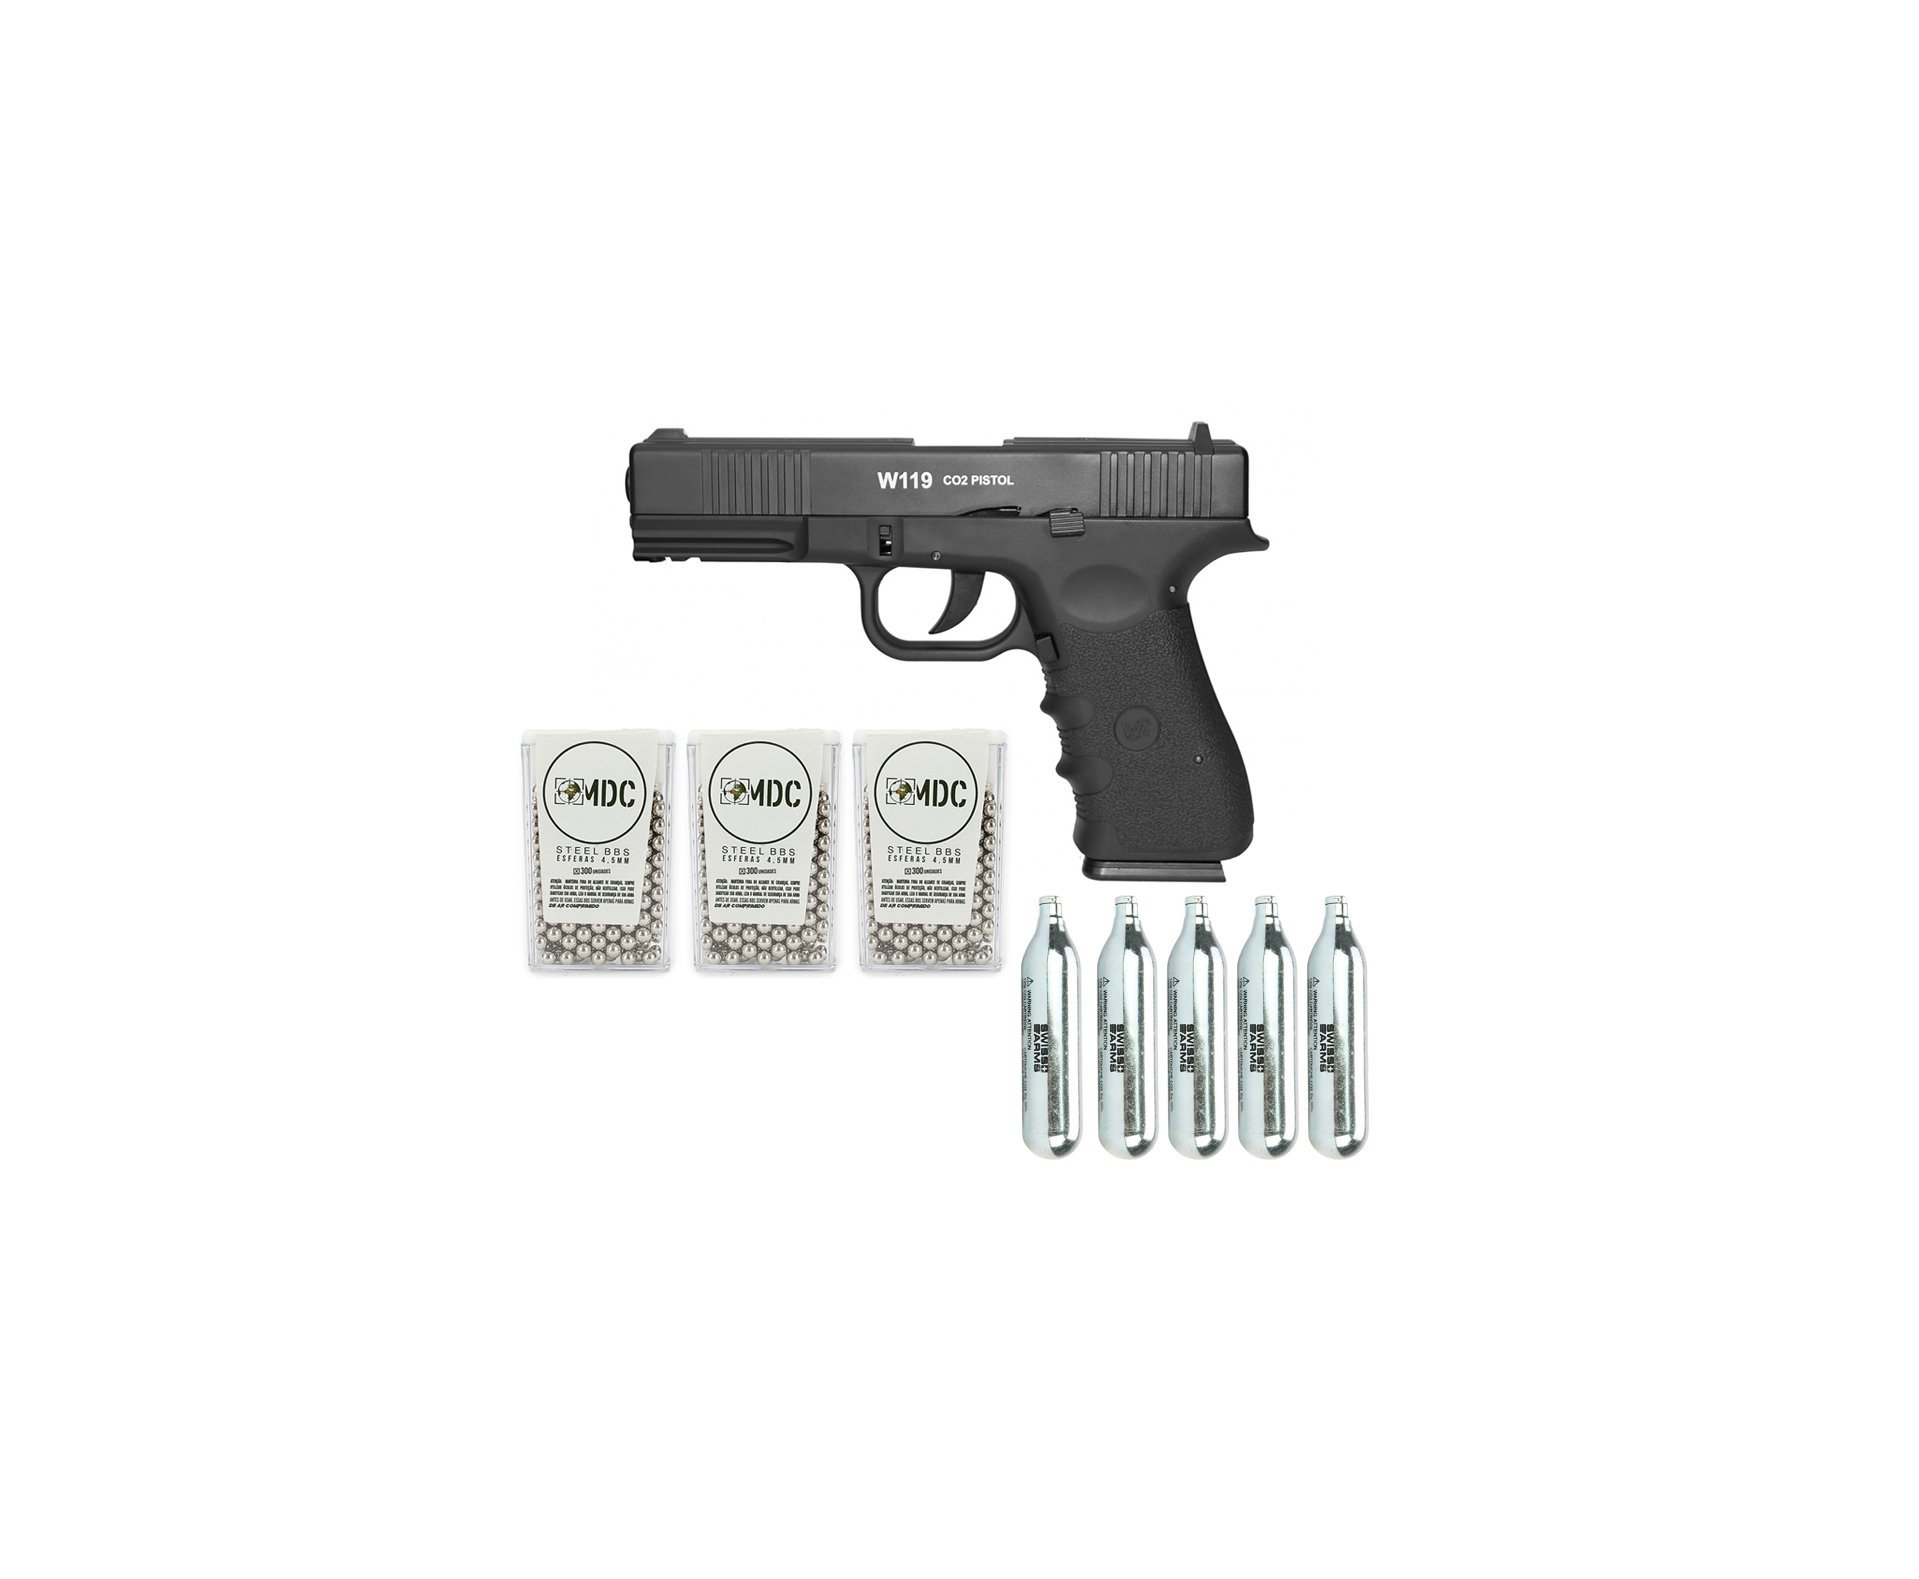 Pistola De Pressão Gas Co2 Wg Glock W119 Slide Metal Blowback 4,5mm + 05 Cilindro Co2 + 900 Esferas Aço